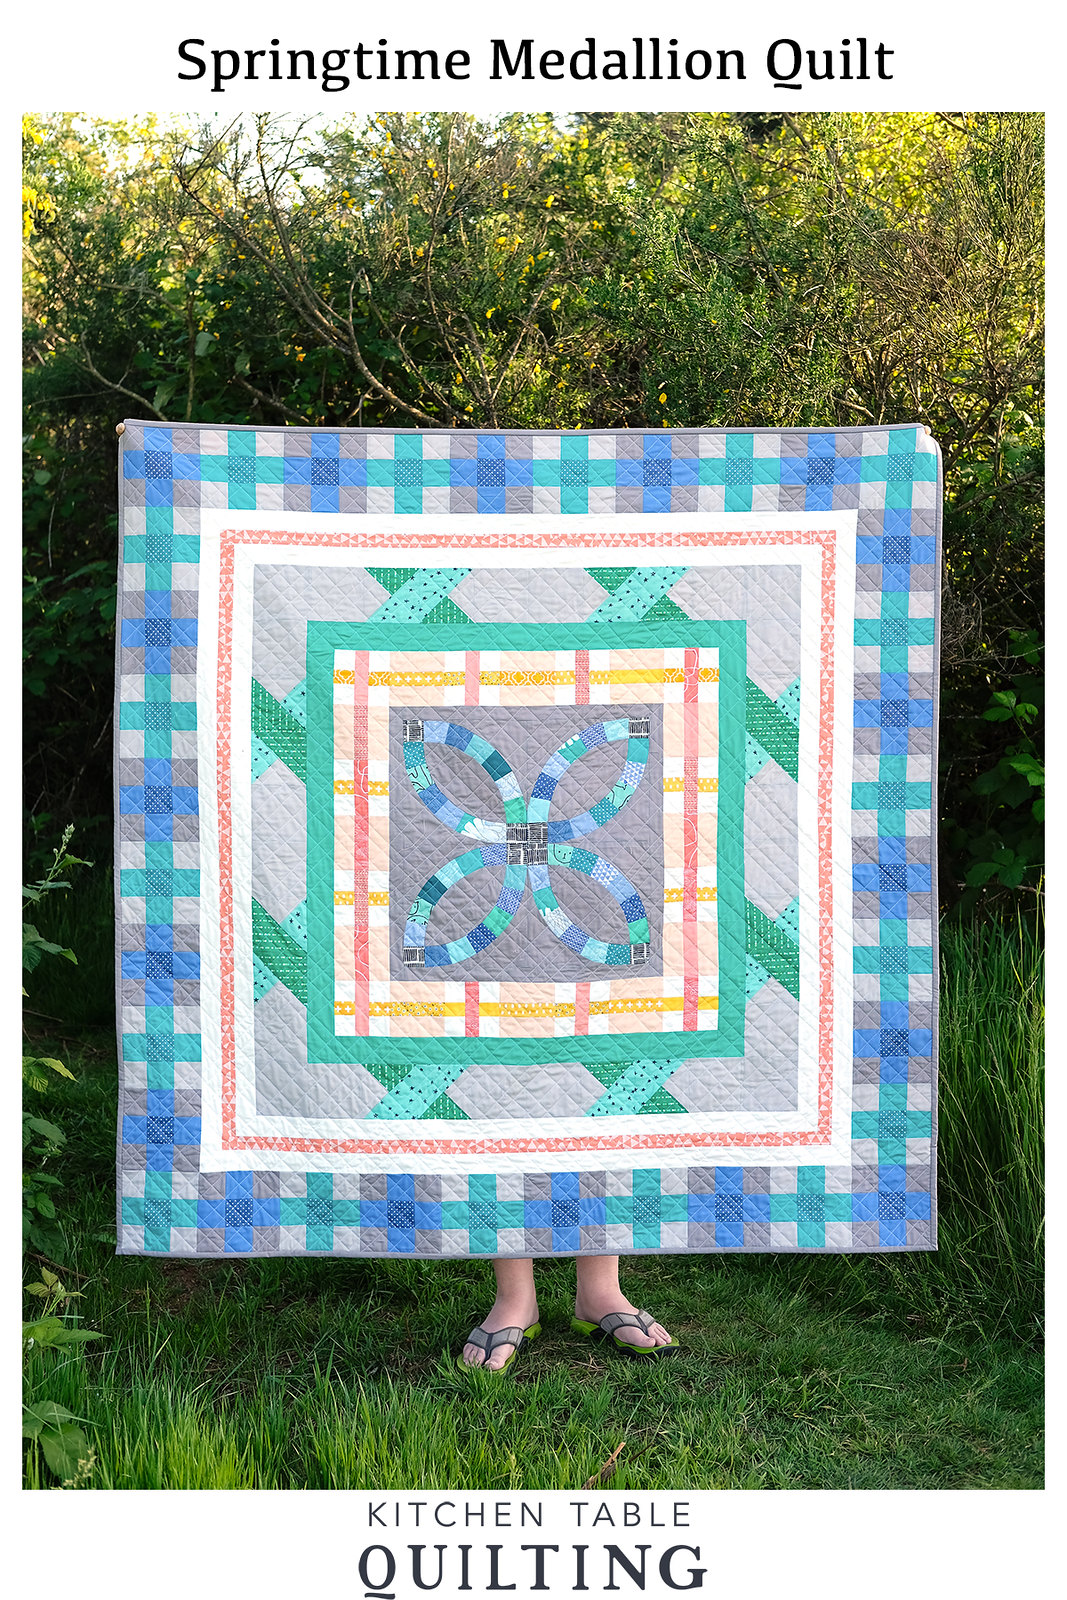 Springtime Medallion Quilt - Kitchen Table Quilting